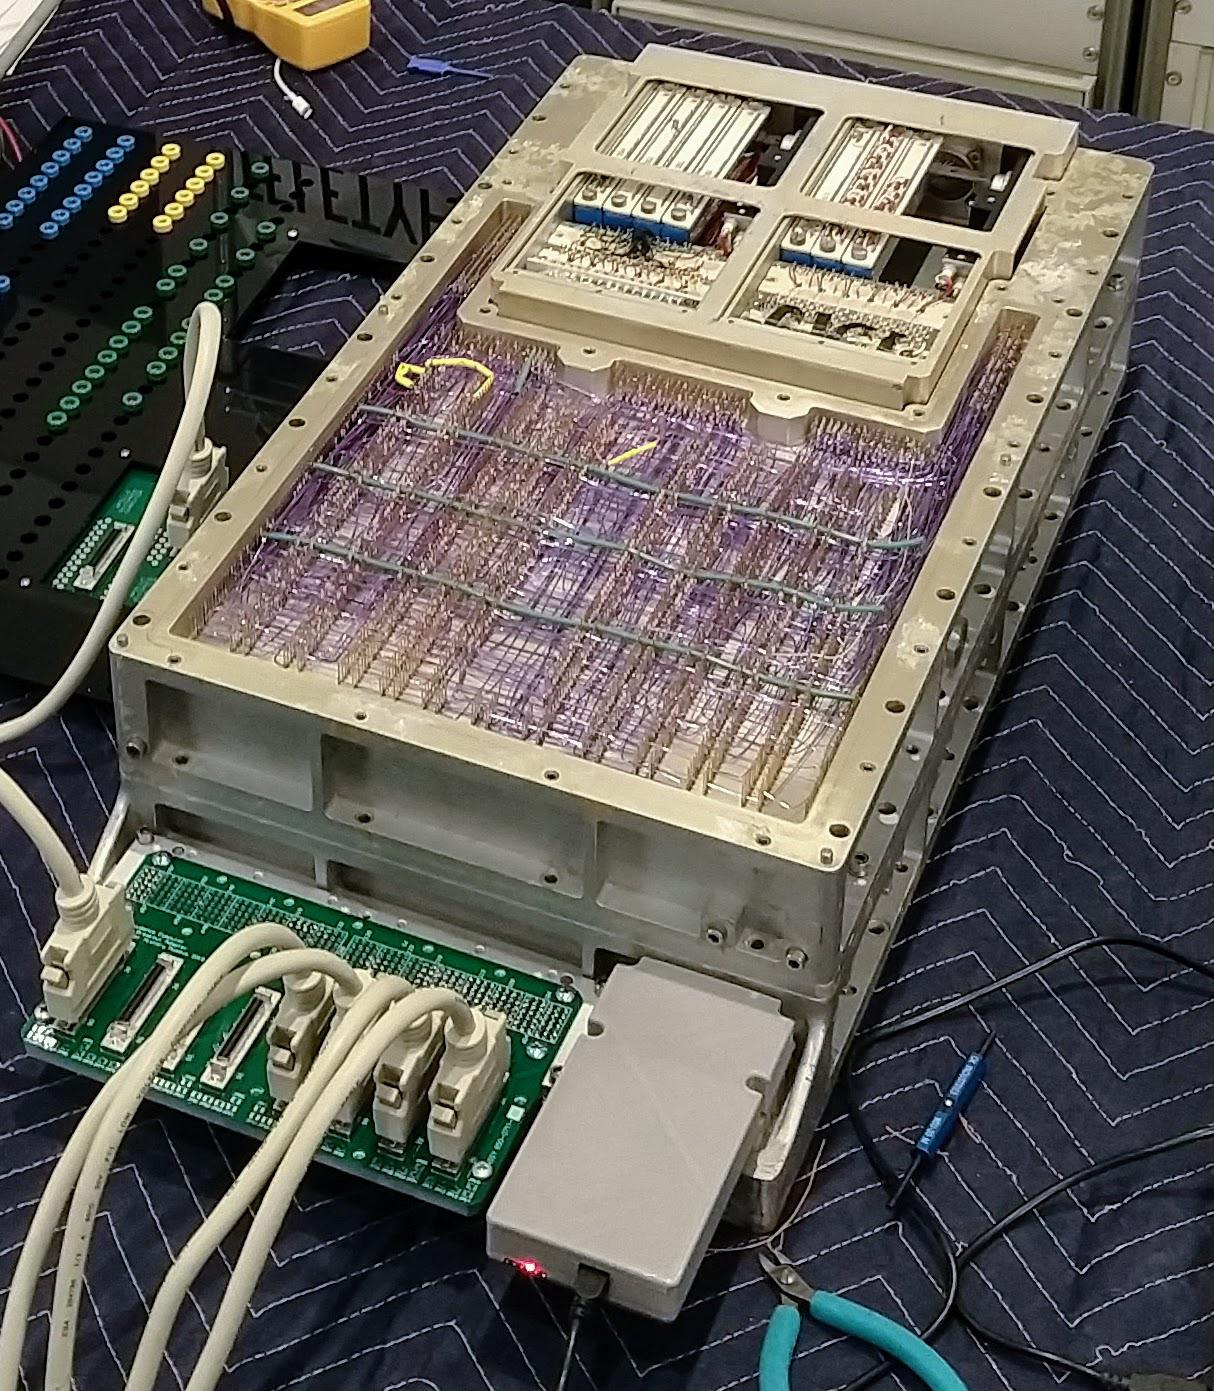 Apollo Guidance Computer: Dipstiks and reverse engineering